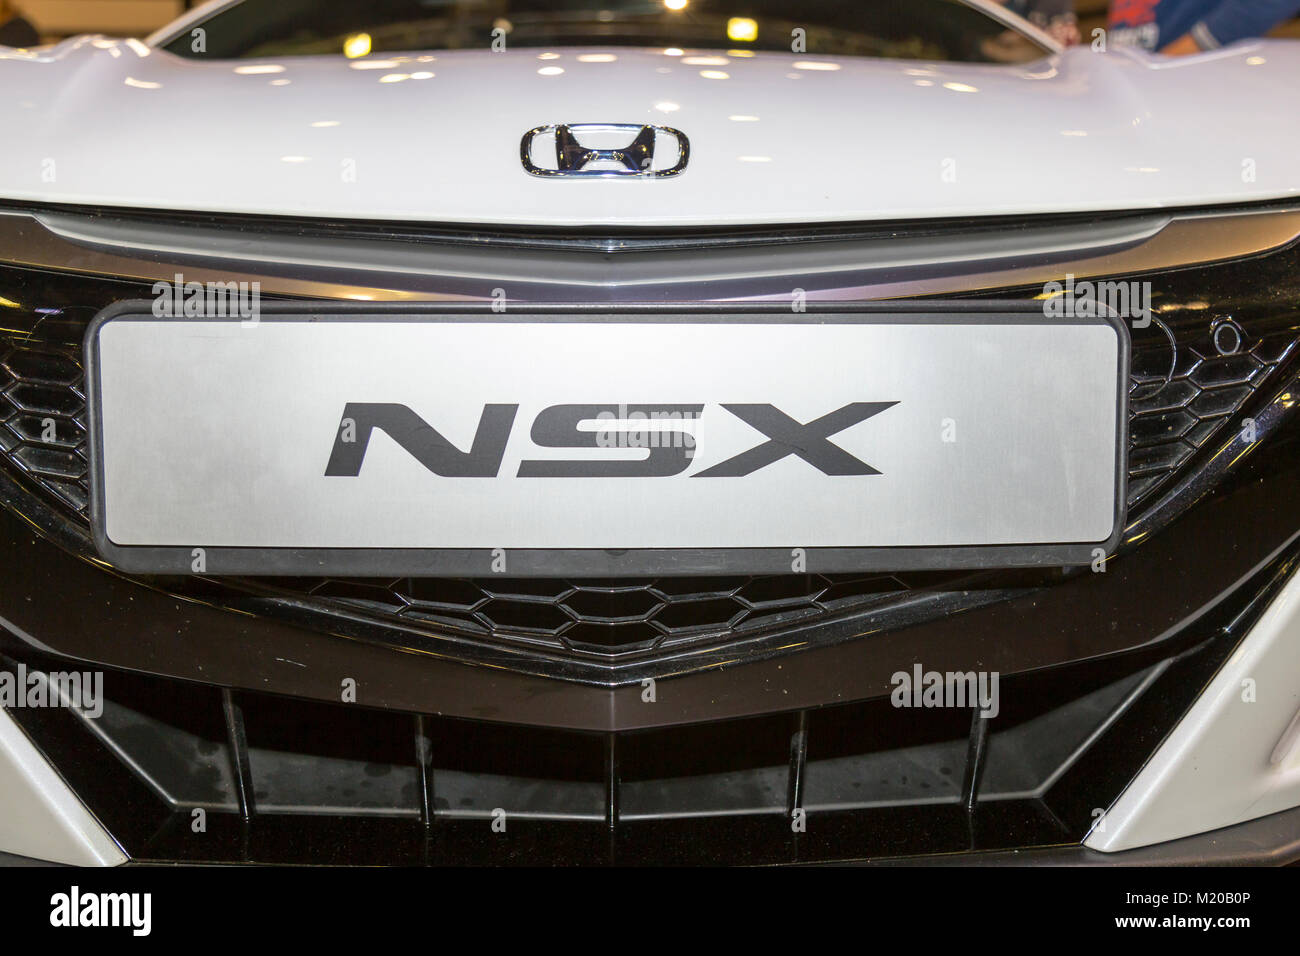 Istanbul, Turquie - 21 Avril 2017: Honda NSX Banque D'Images